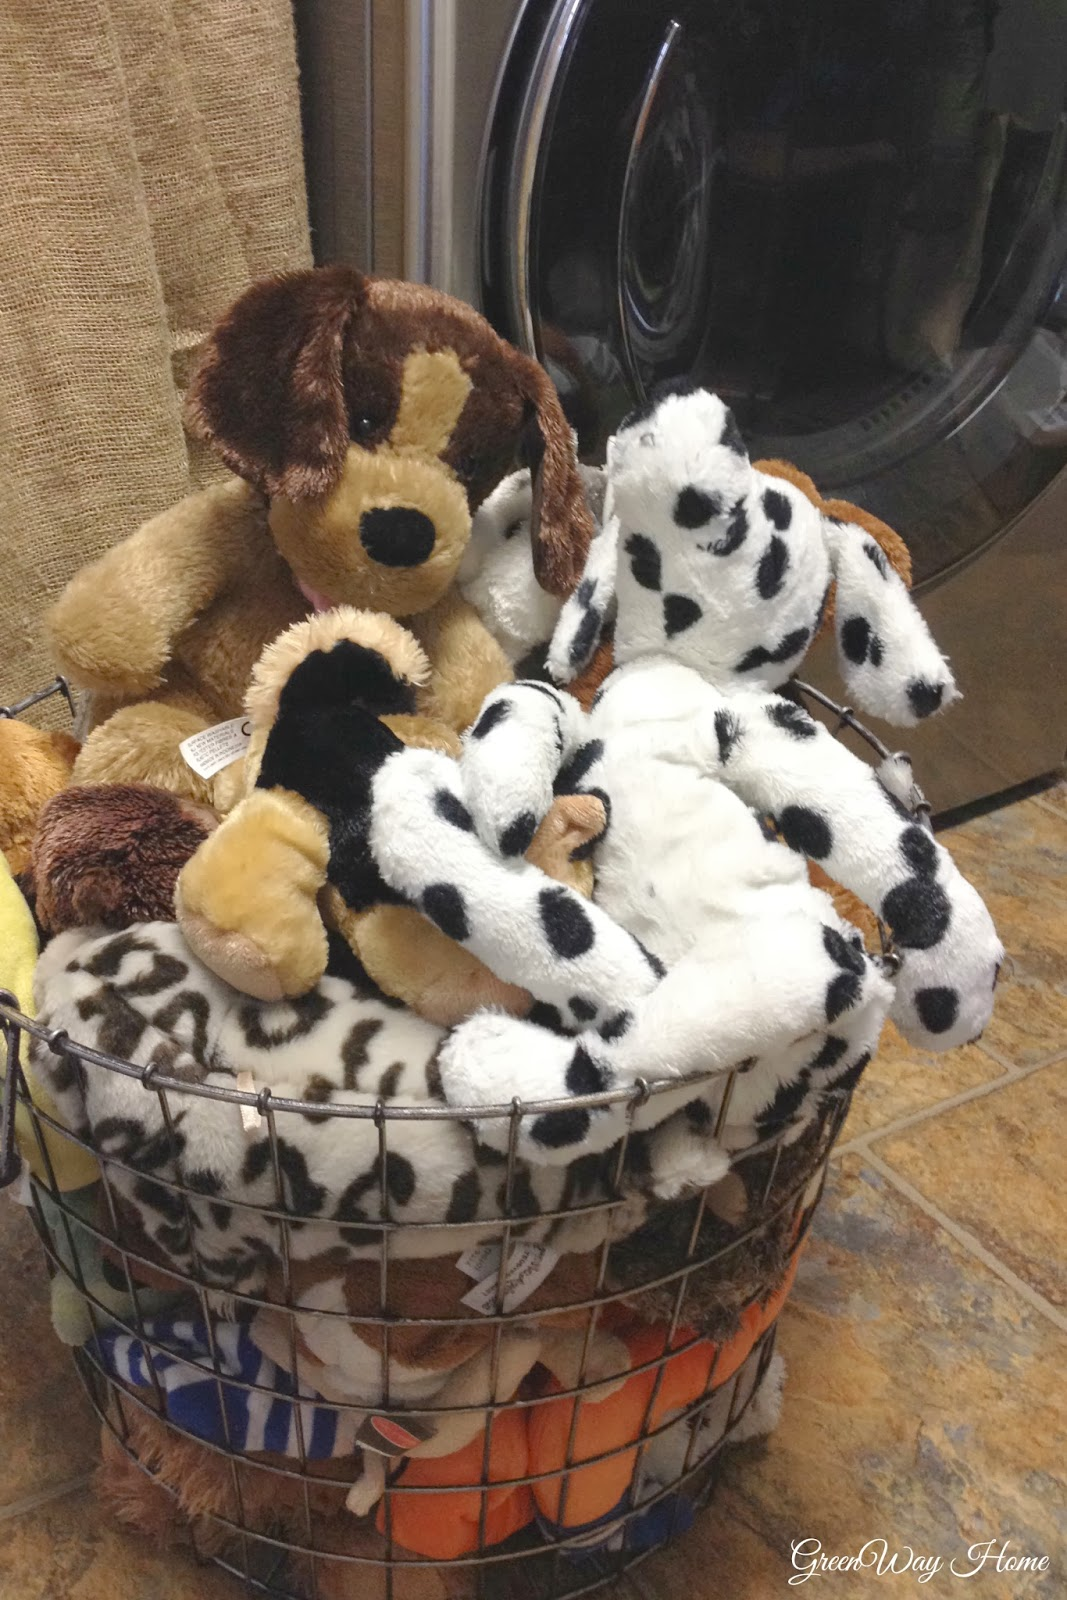 greenway home homekeeping how to clean stuffed animals. Black Bedroom Furniture Sets. Home Design Ideas